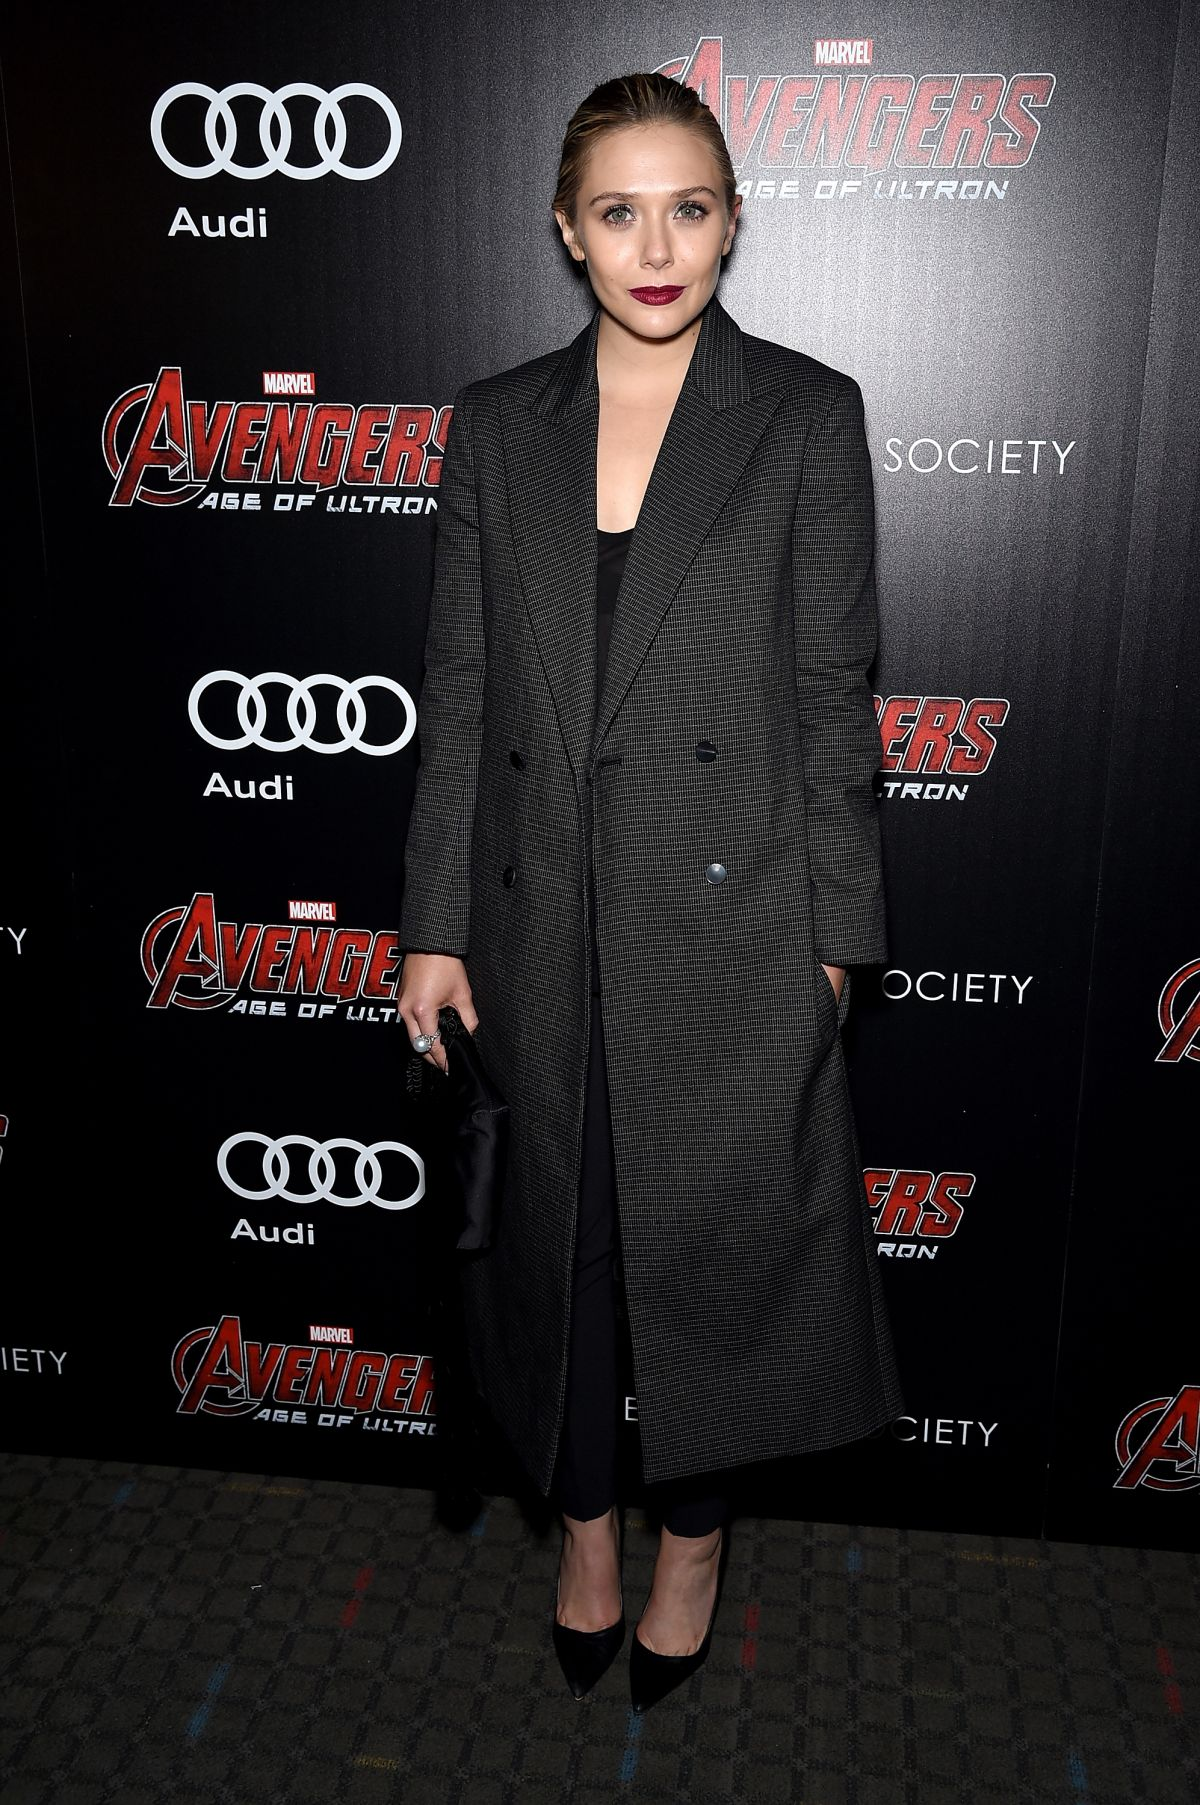 ELIZABETH OLSEN at Avengers: Age of Ultron Screening in New York